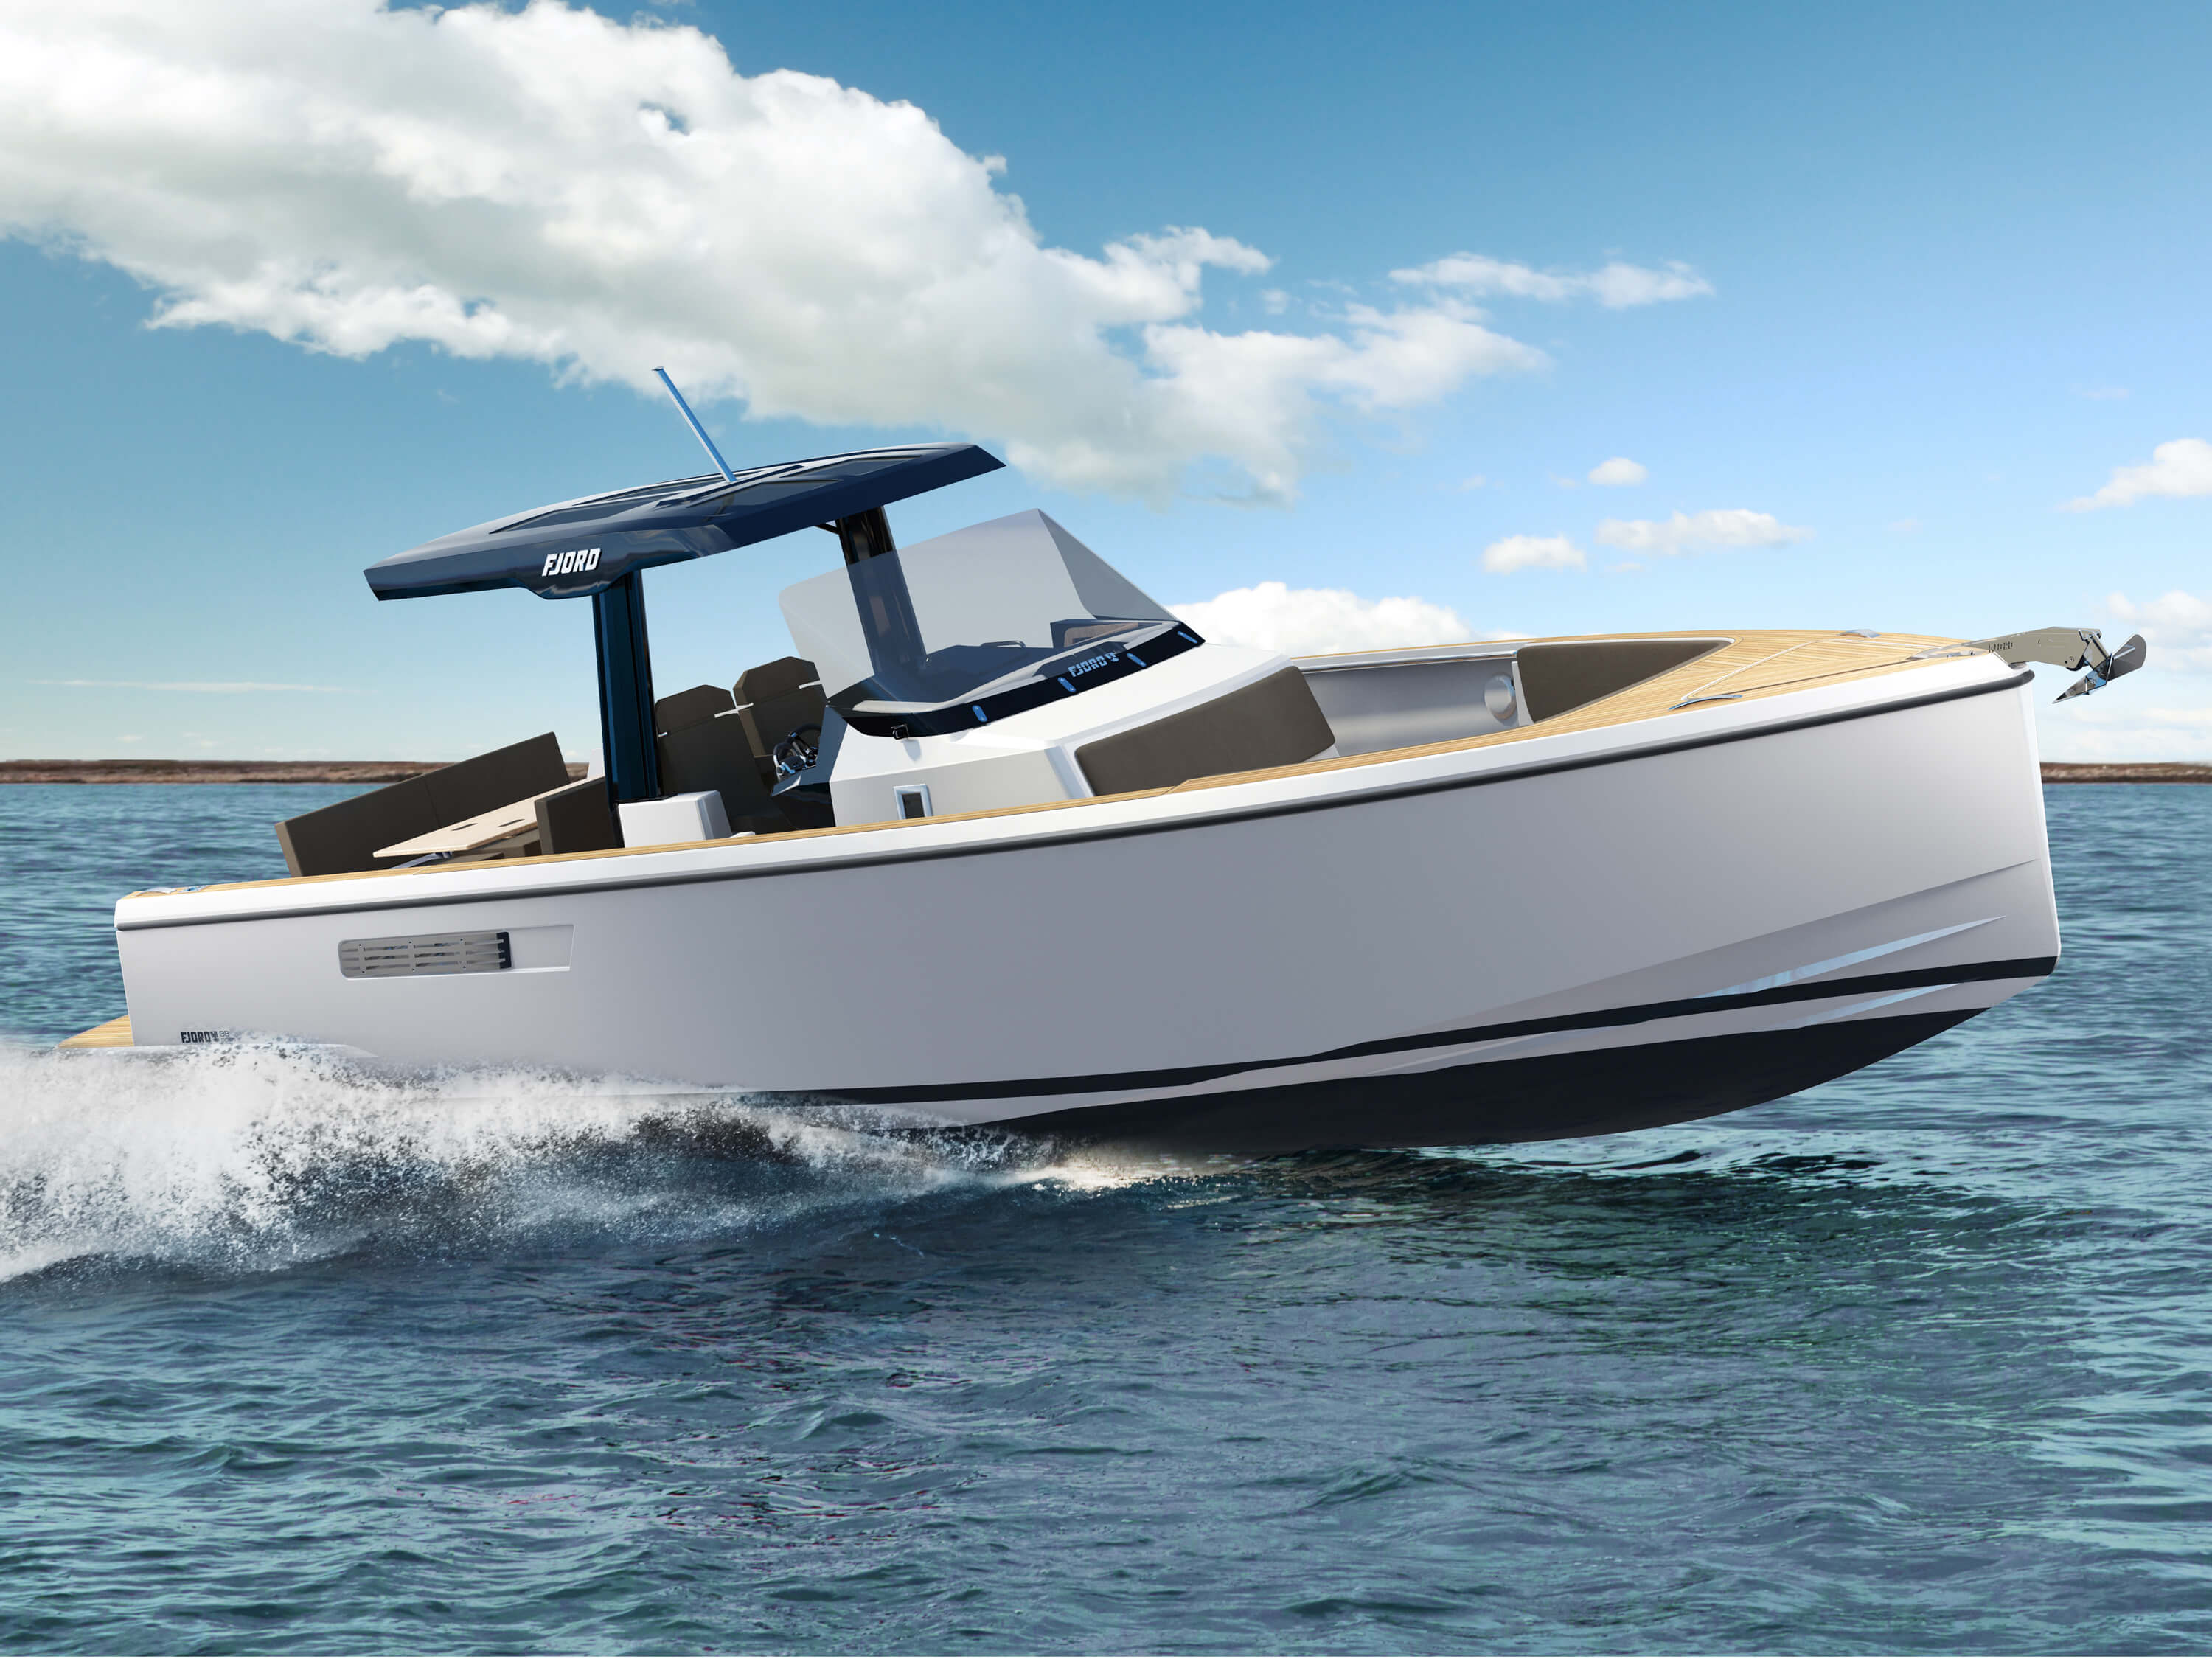 FJORD 38 open exterior | The V-shaped hull creates great stability, yet permits breathtaking dynamics. | Fjord